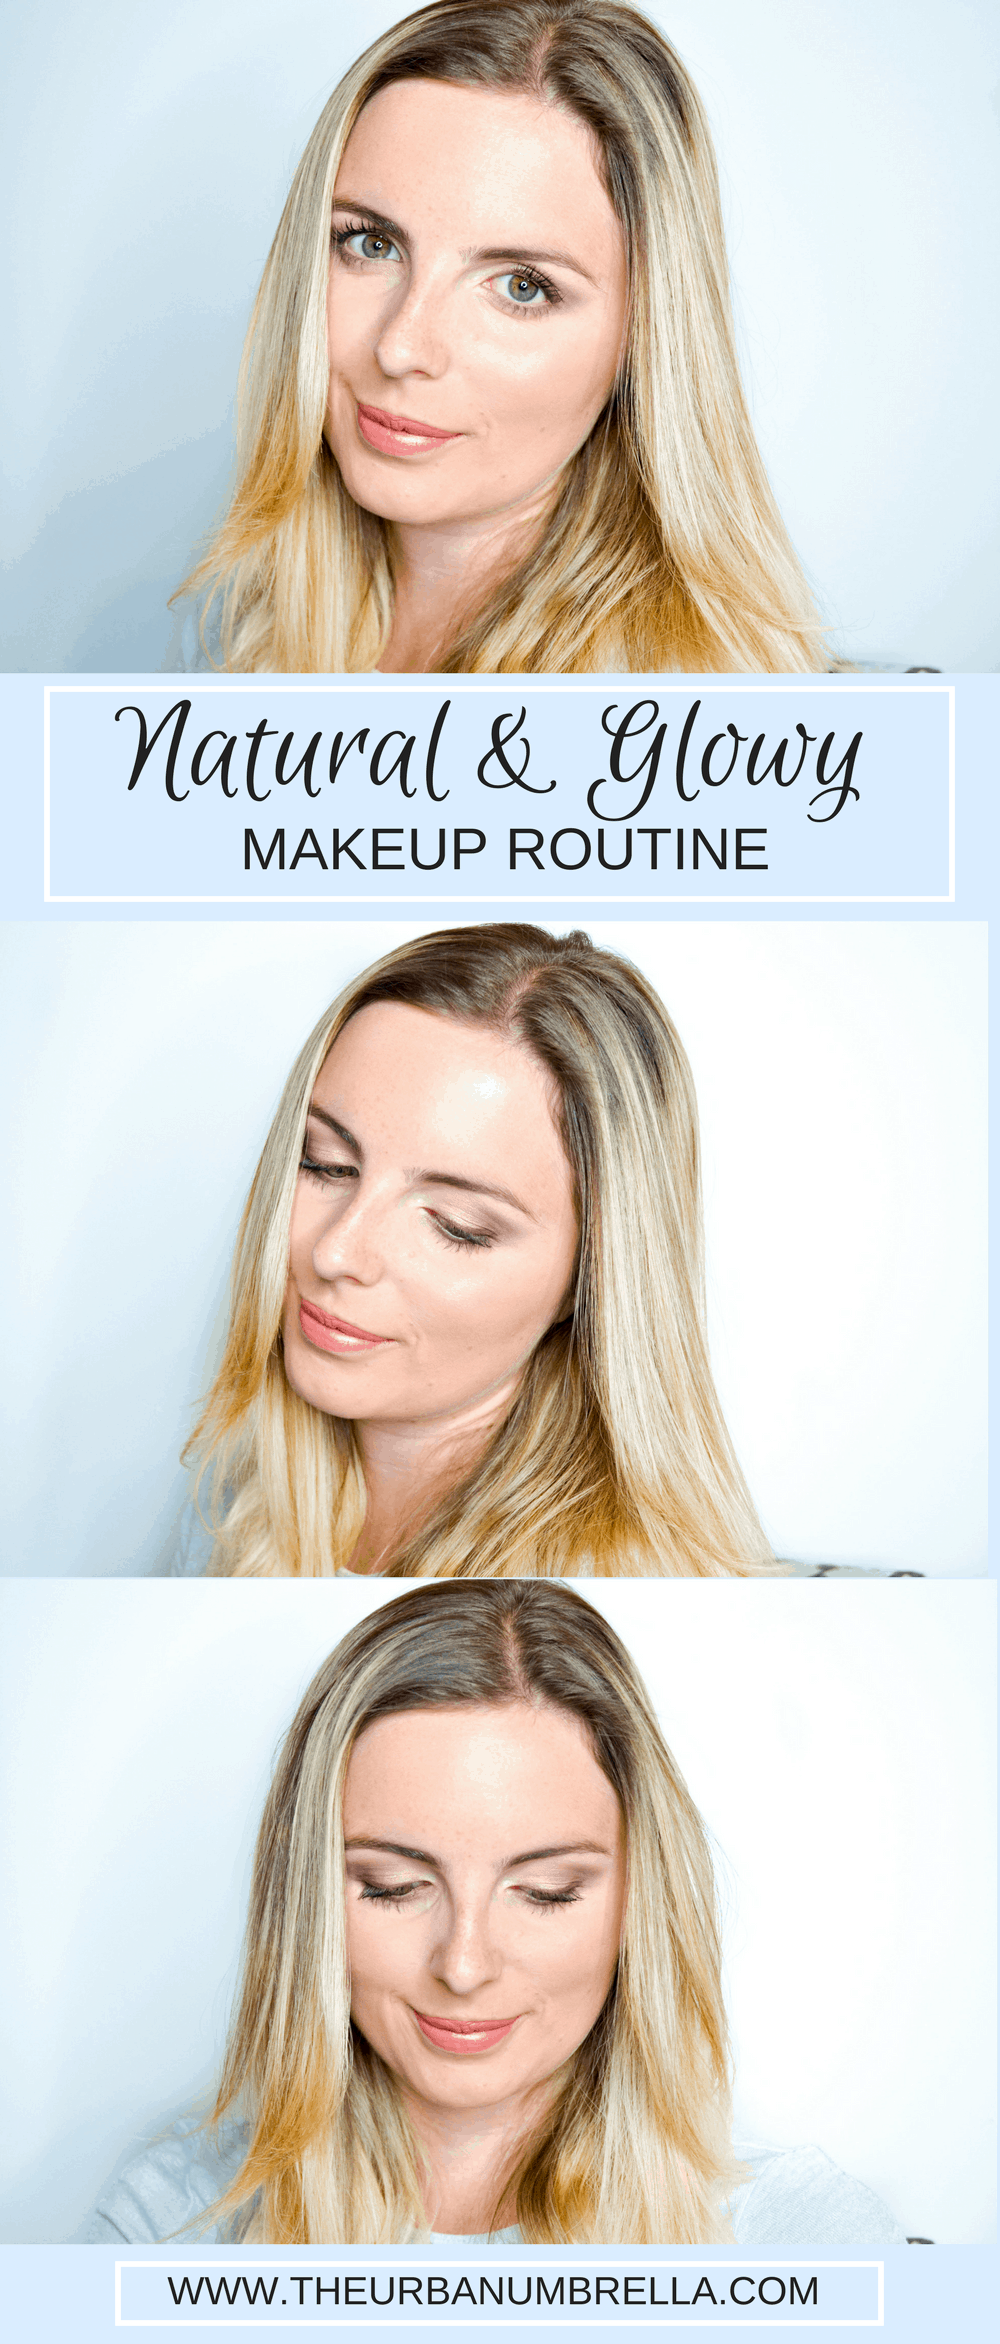 Natural Every Day Glowy Makeup Routine